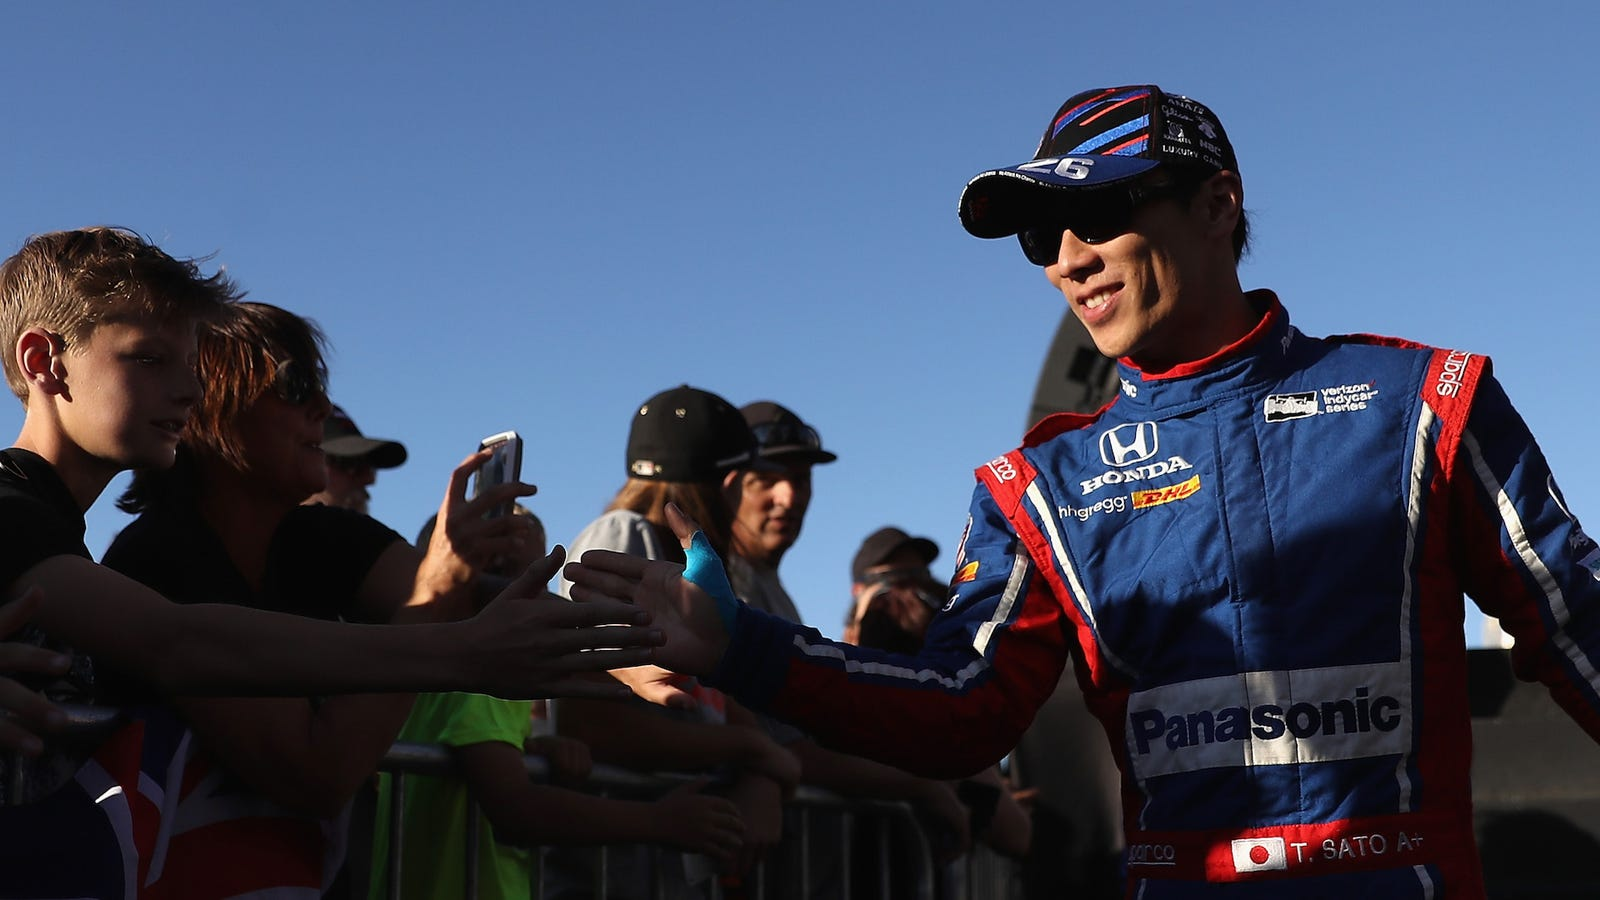 Takuma Sato's Honda Engine Survives All 200 Laps To Win The 2017 Indianapolis 500